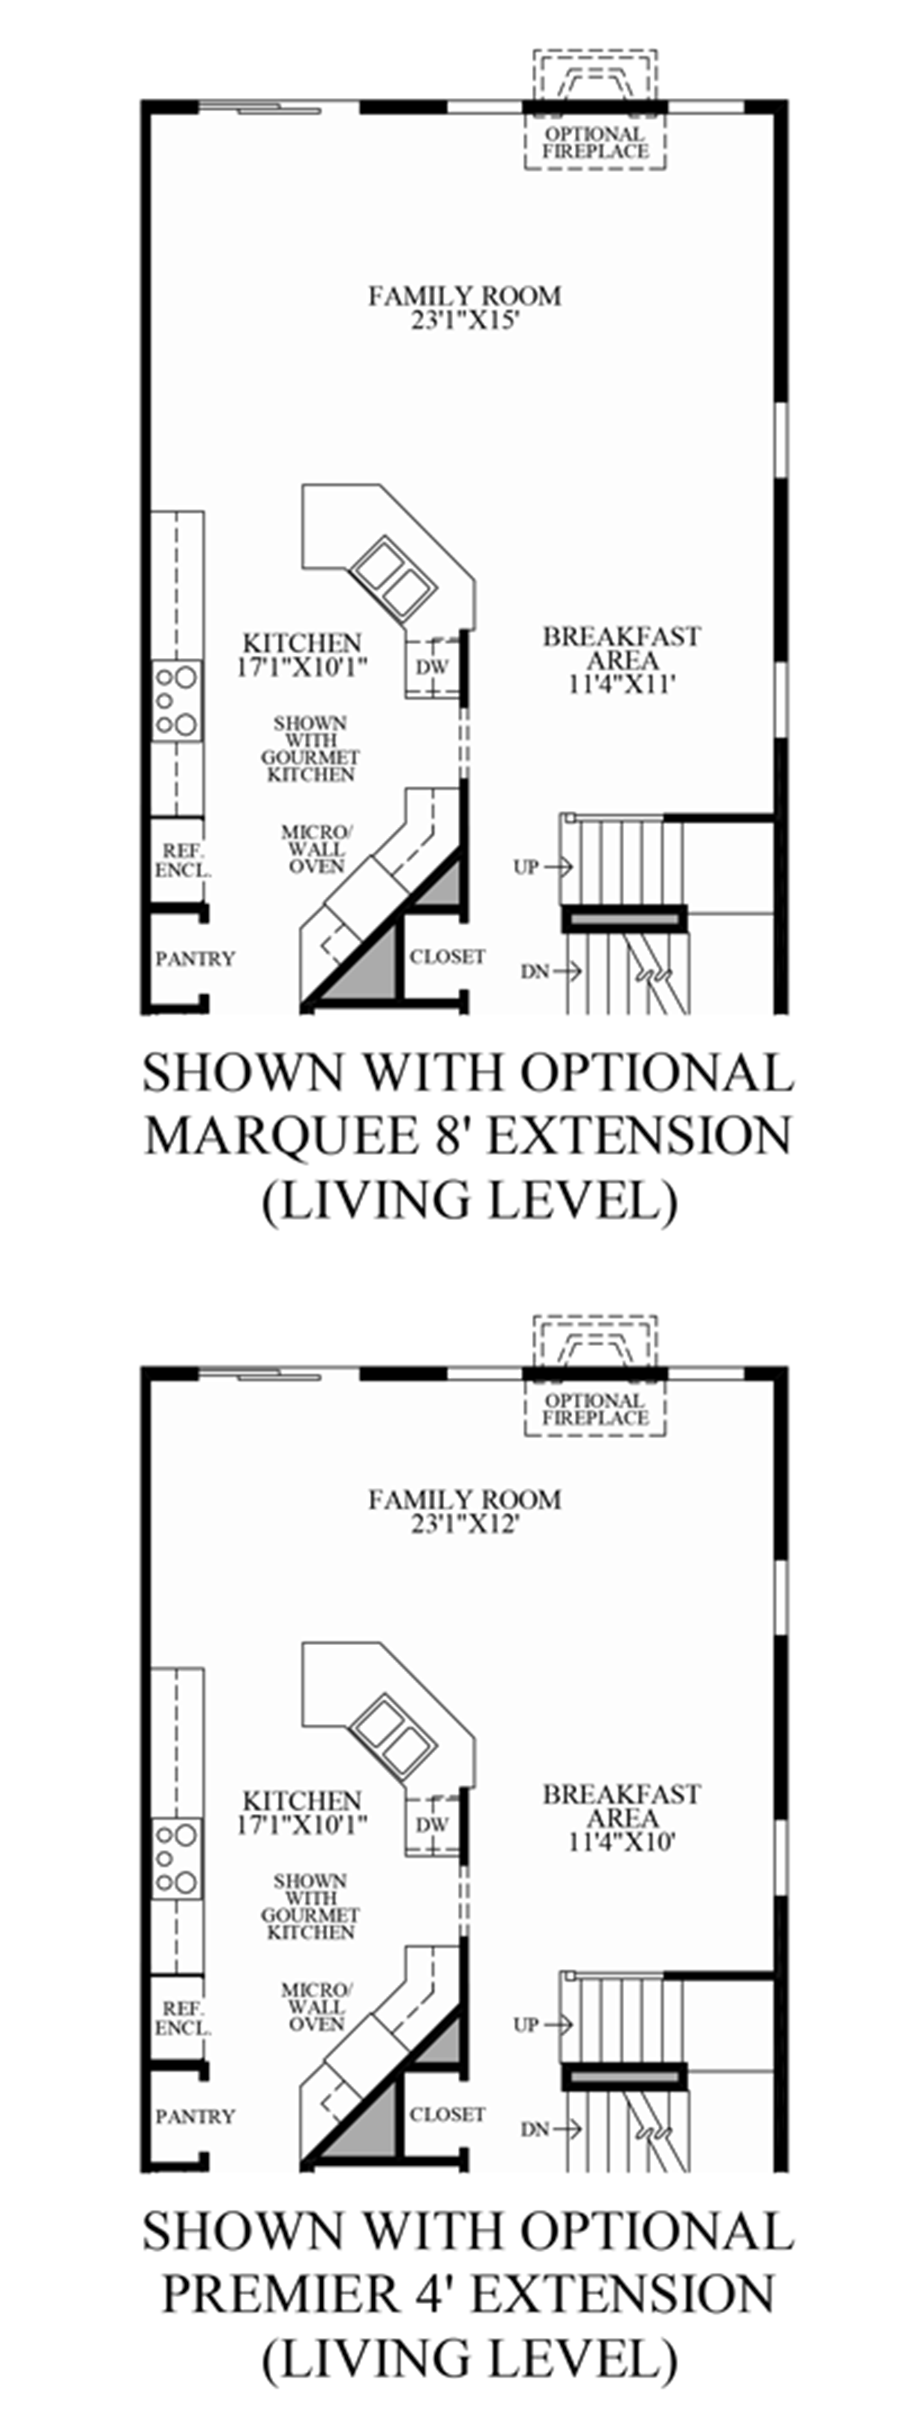 Optional Living Level Extensions Floor Plan